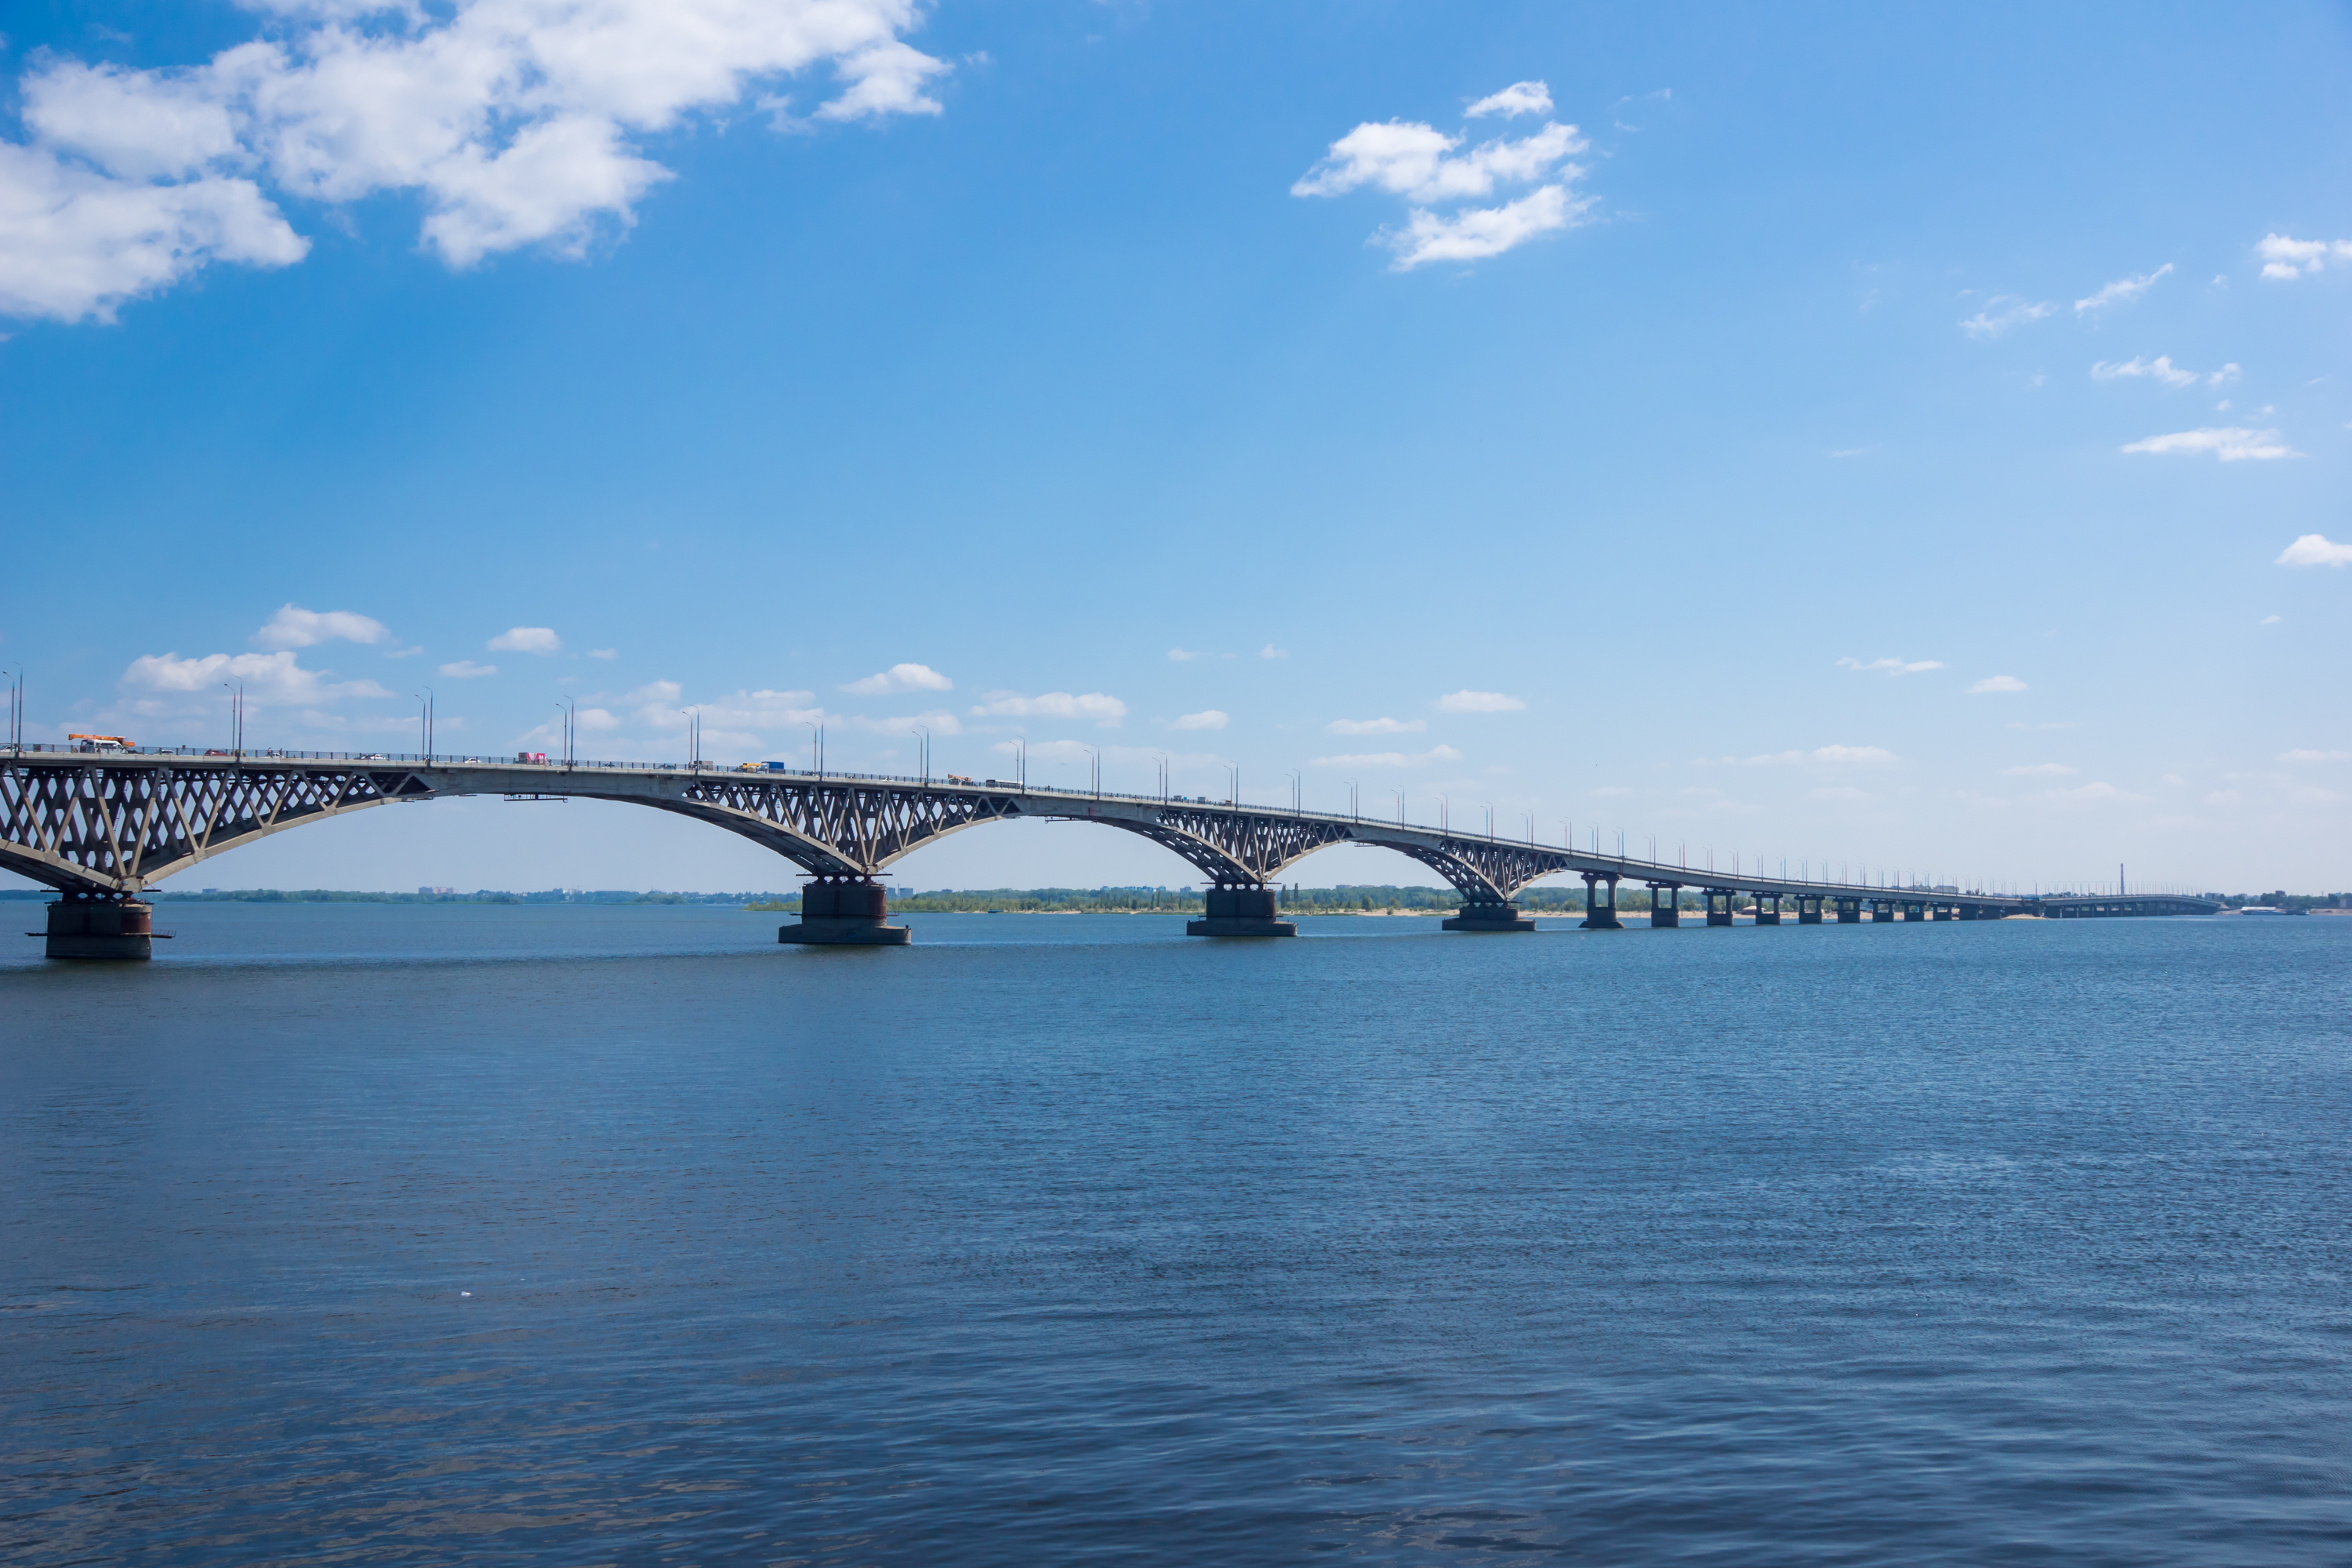 Saratov bridge across the Volga